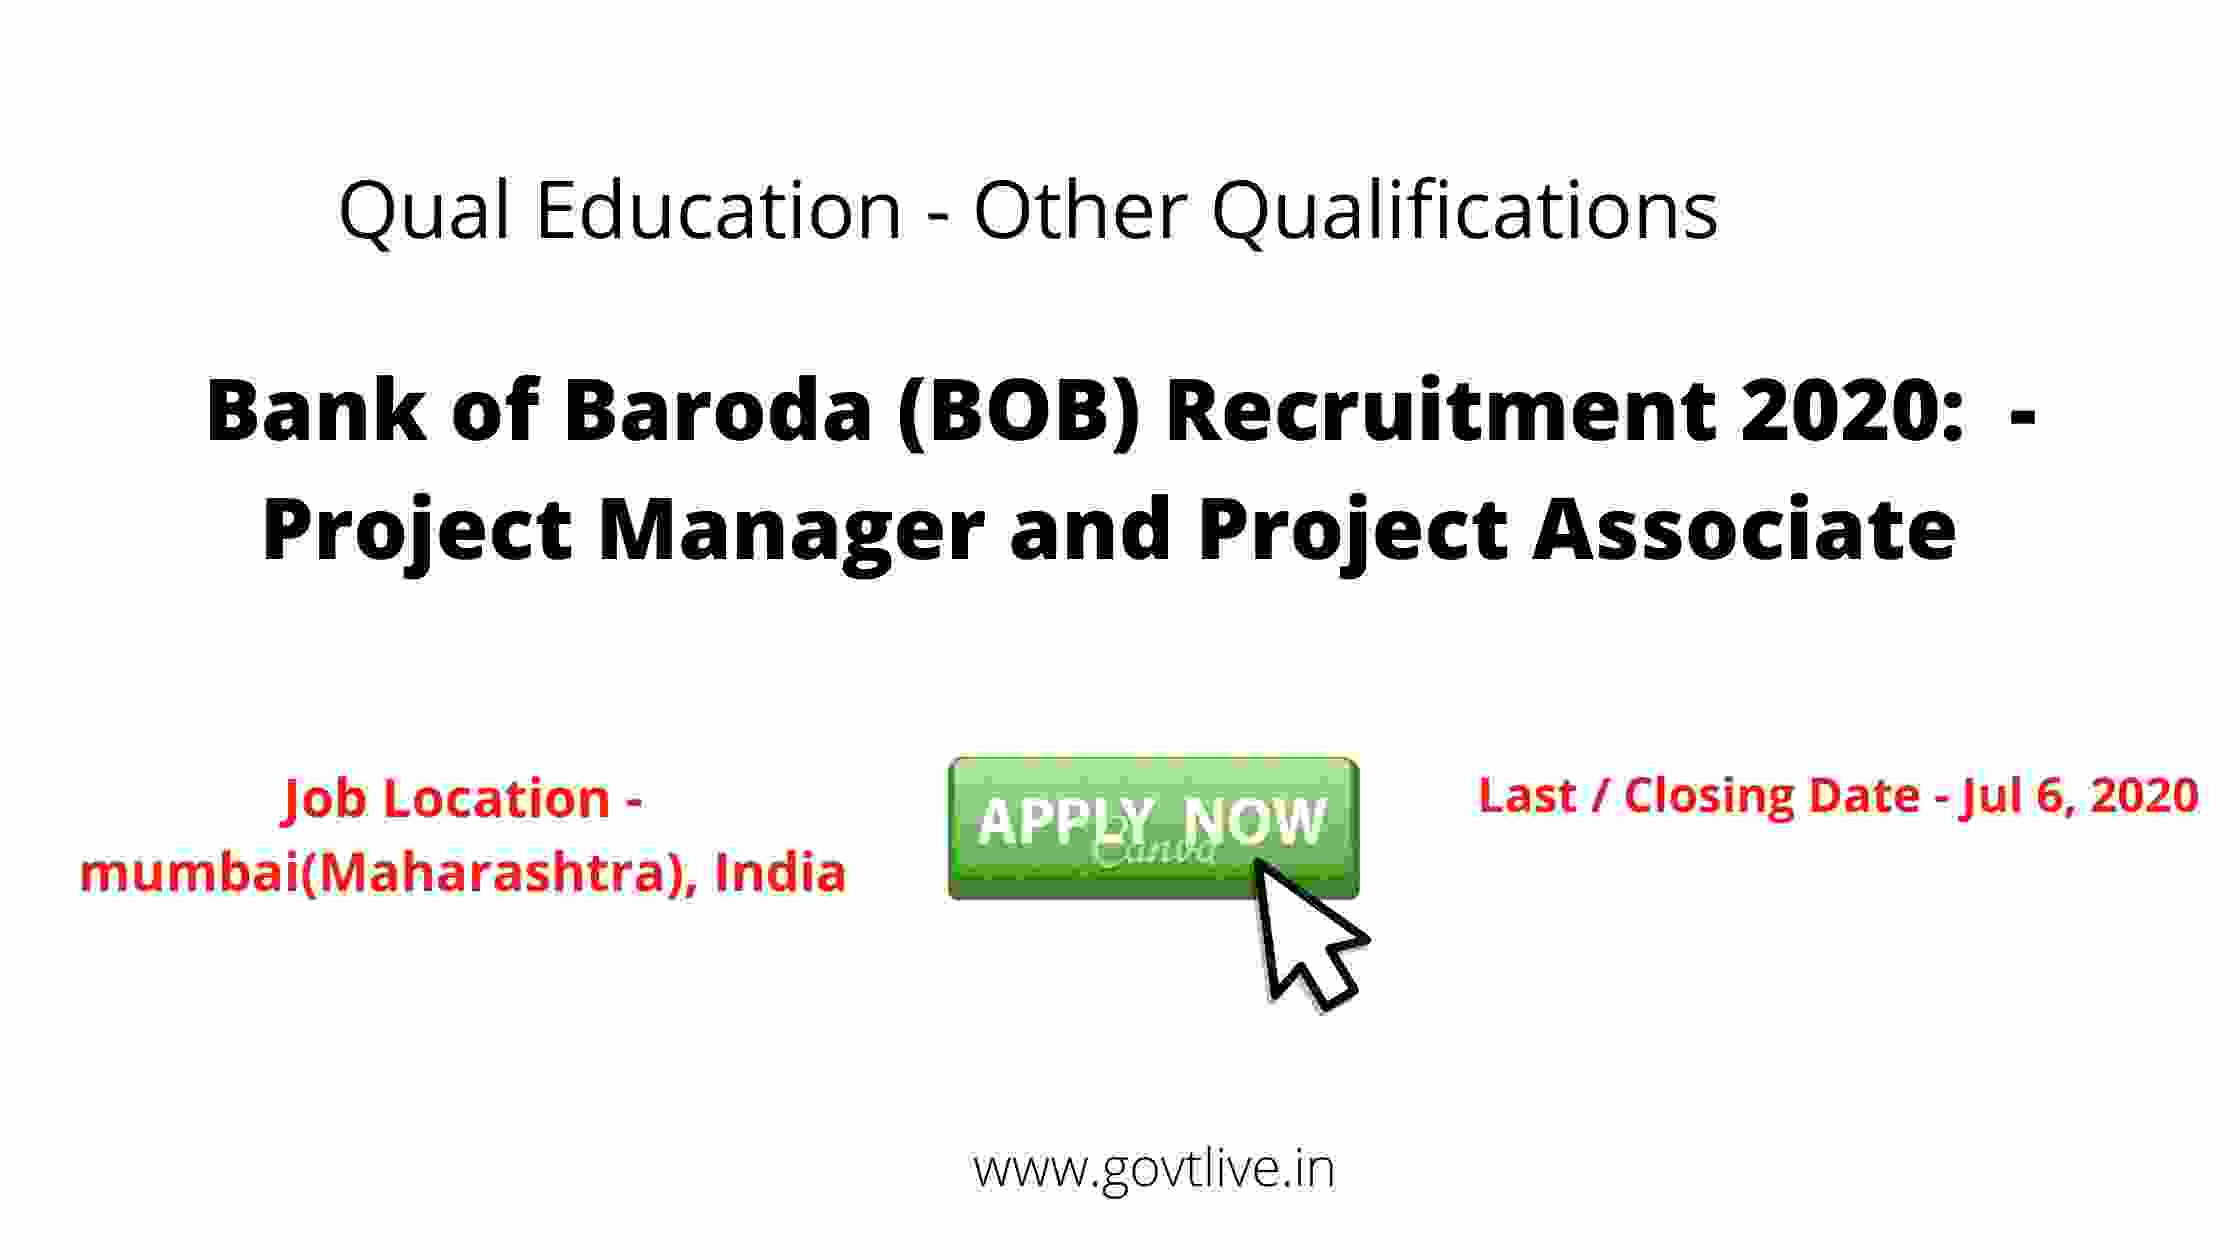 Bank of Baroda (BOB) Recruitment 2020:  - Project Manager and Project Associate